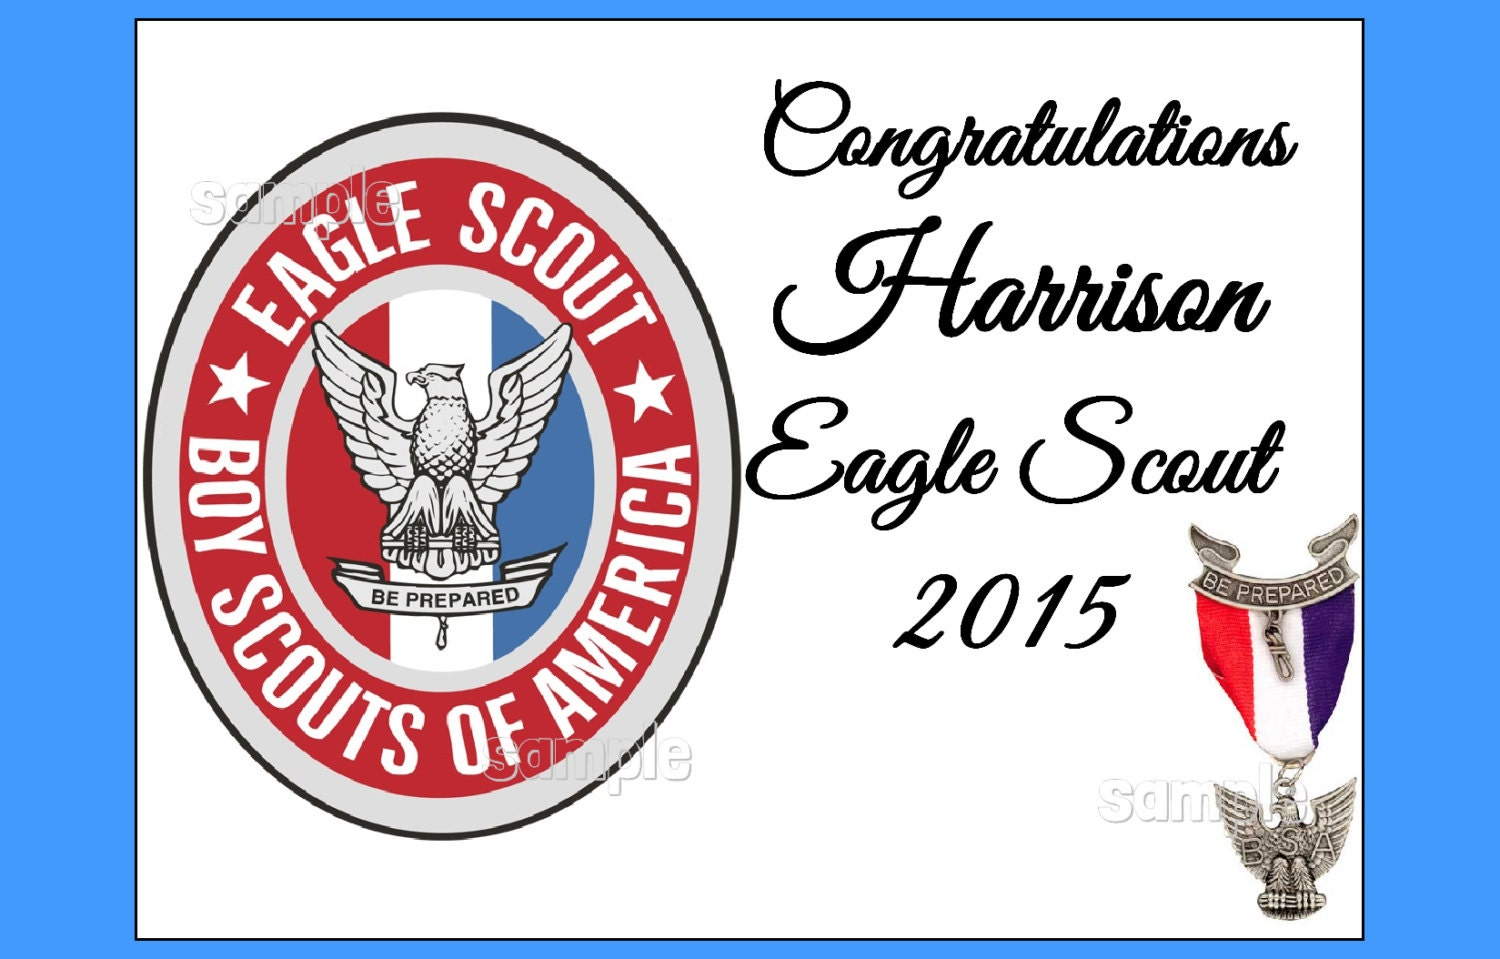 Eagle scout image - photo#47